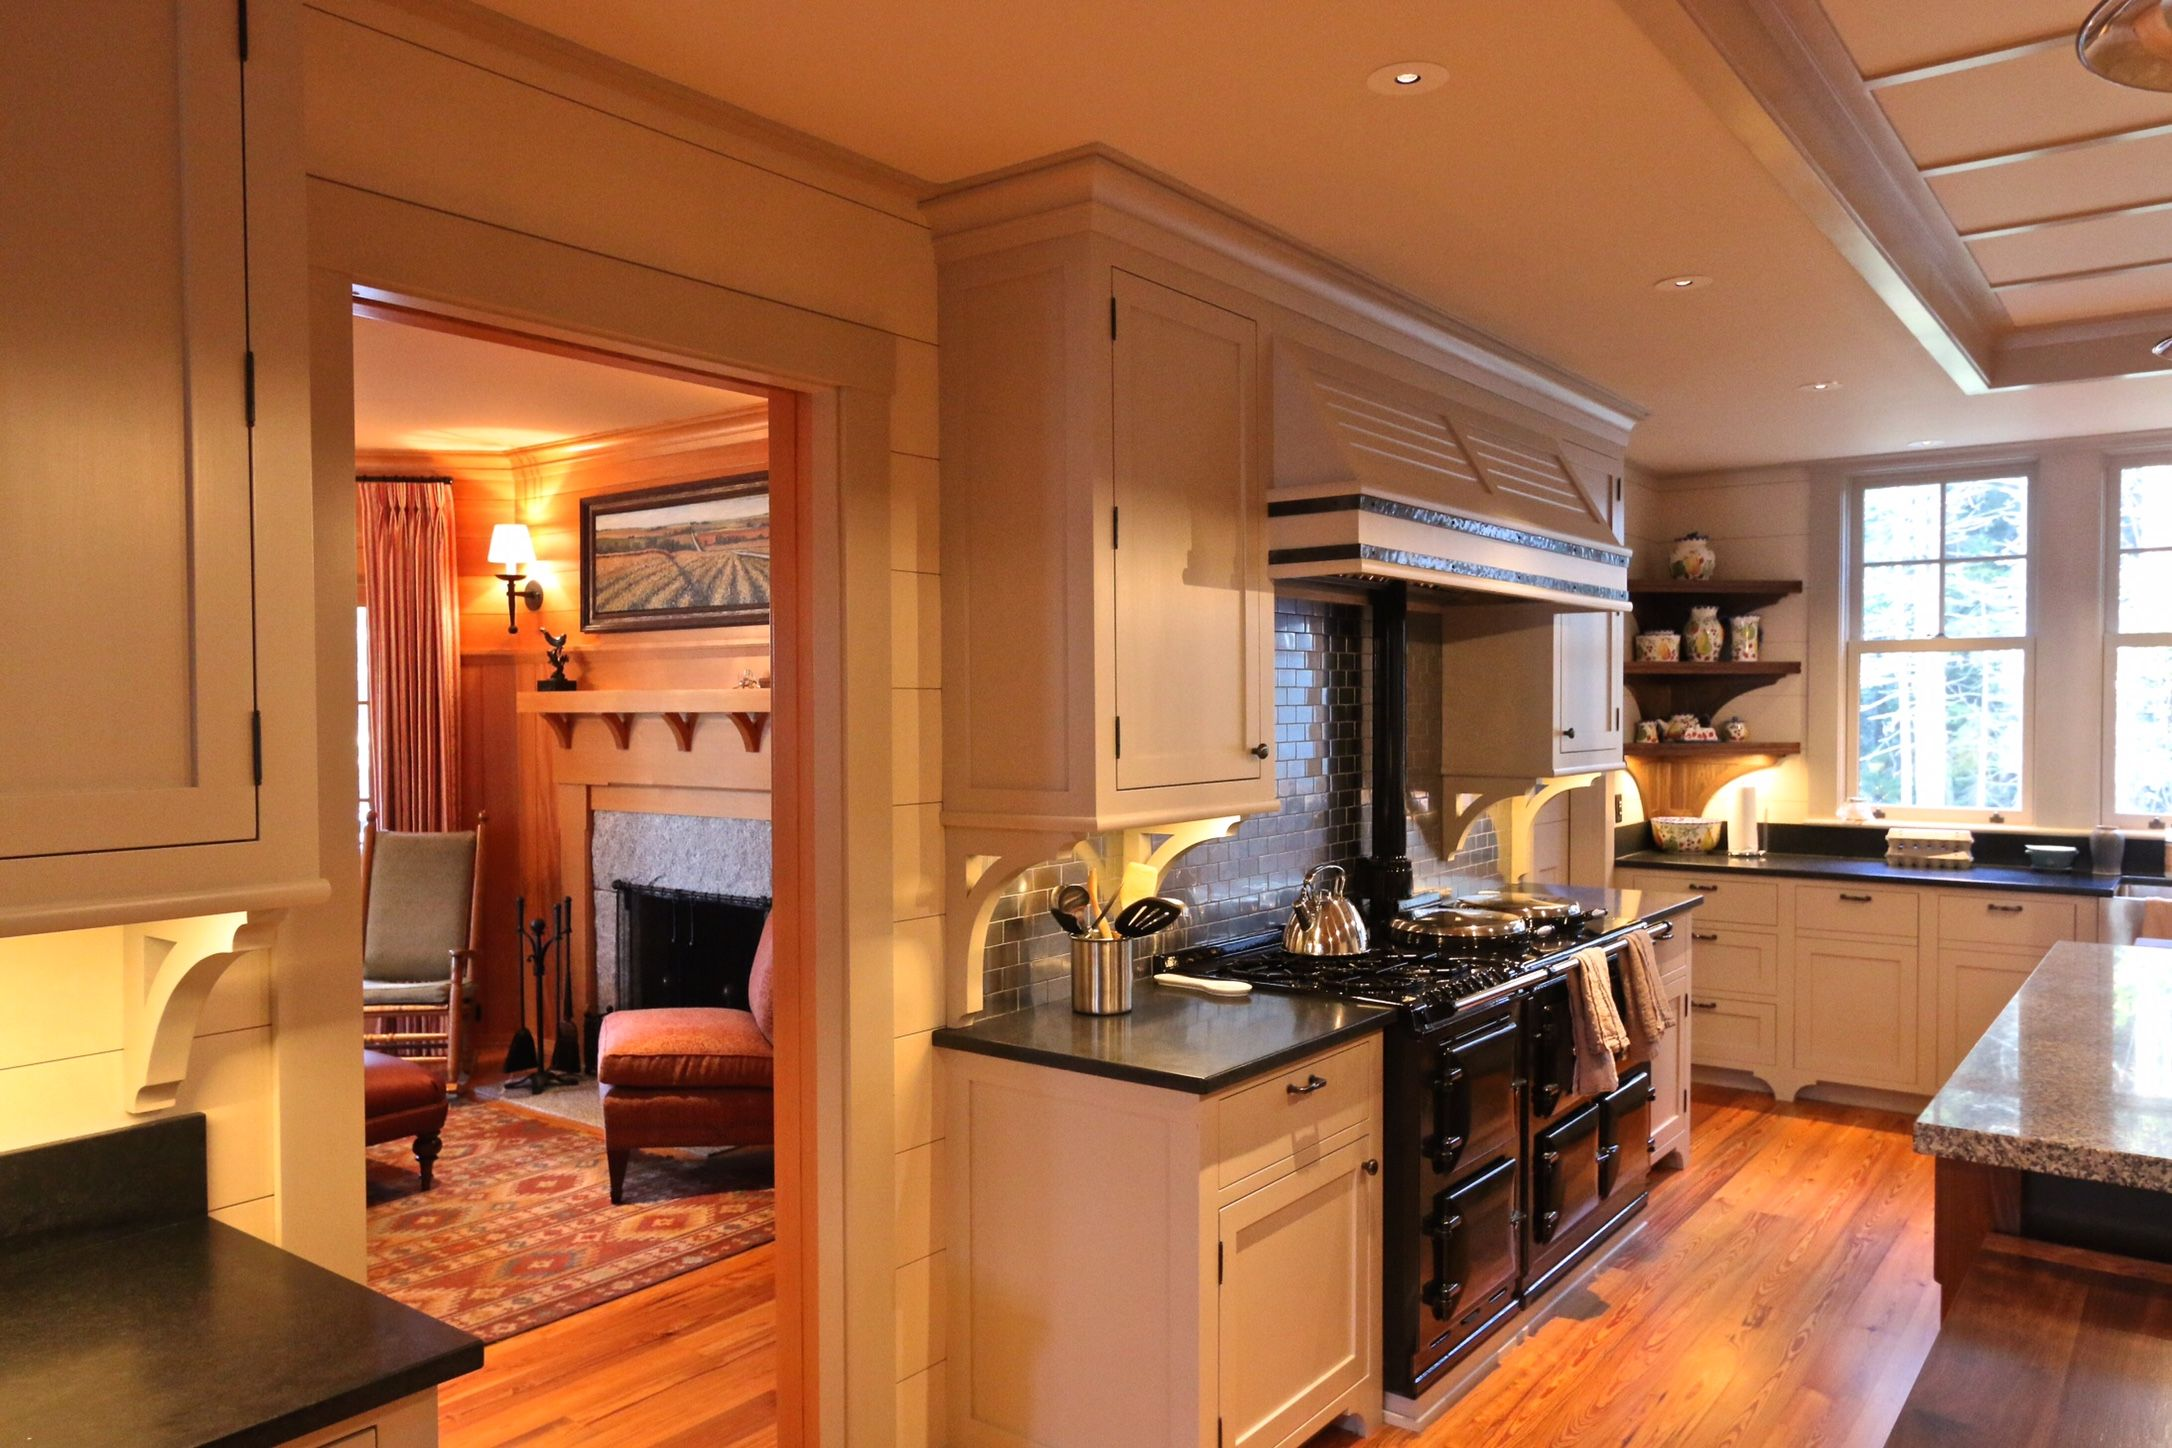 Pin by KBO Maine on Maine Kitchens | Kitchen, Home decor ...